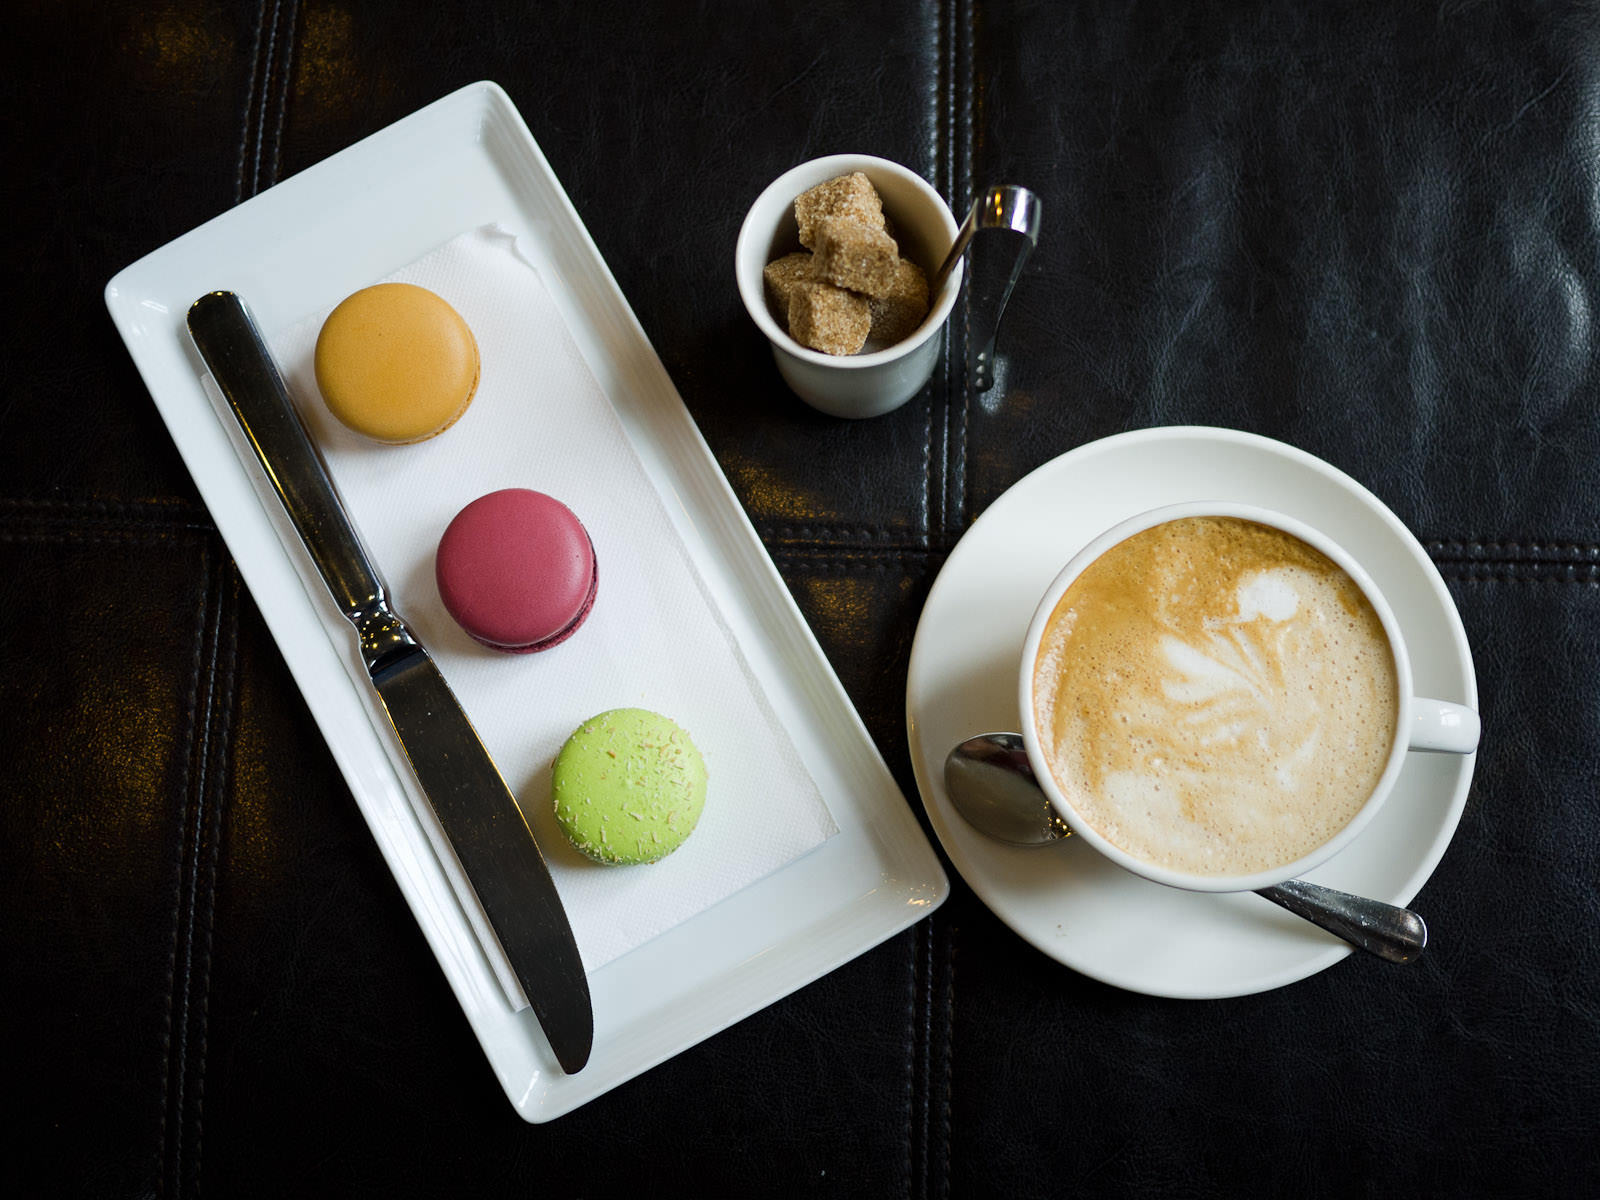 Salted caramel, blackcurrant and lime, mango and coconut macarons, soy flat white